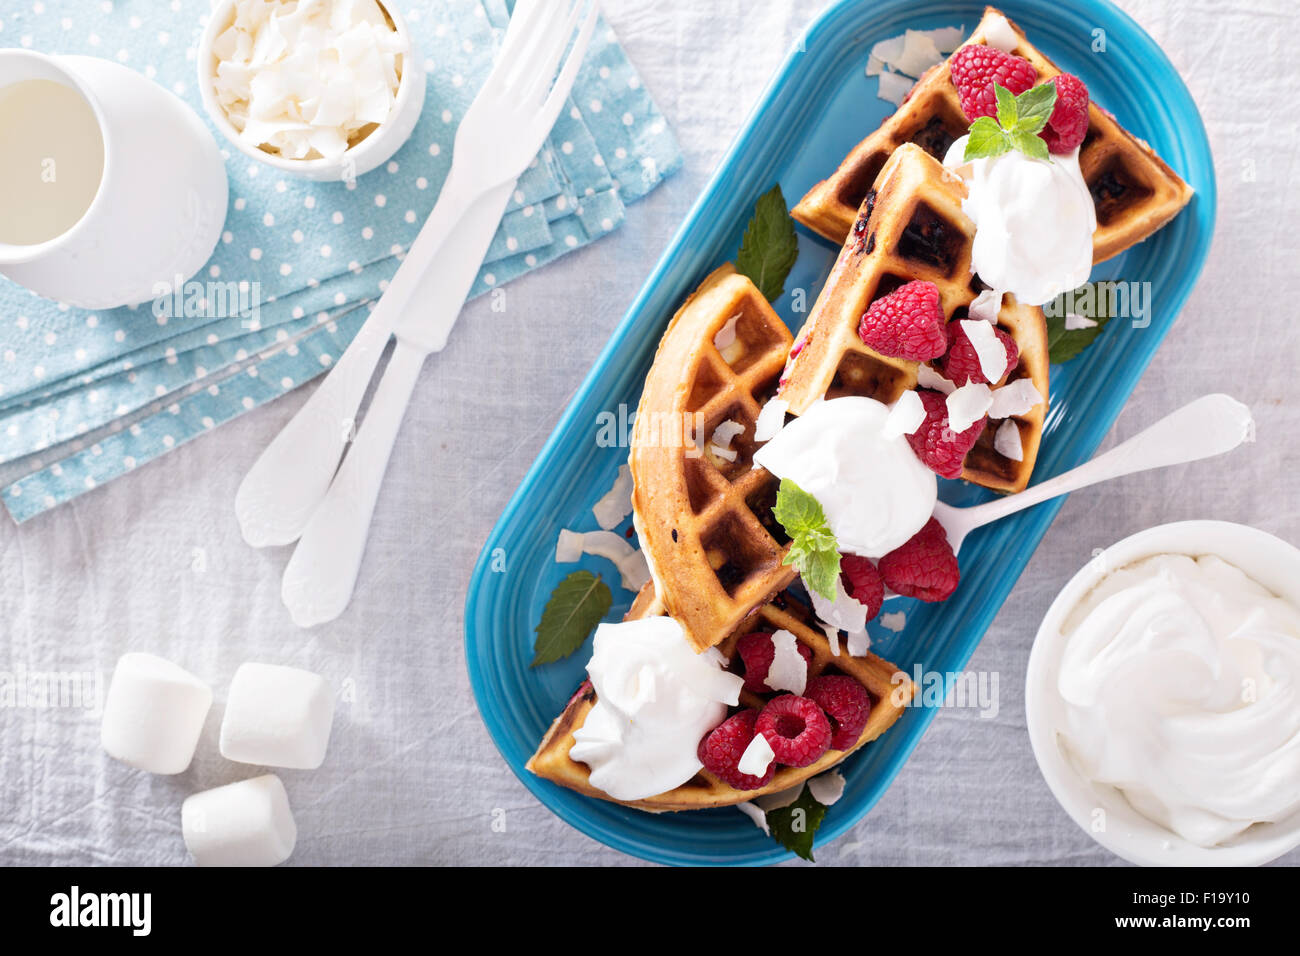 Coconut raspberry waffles served with fresh berries and whipped cream - Stock Image